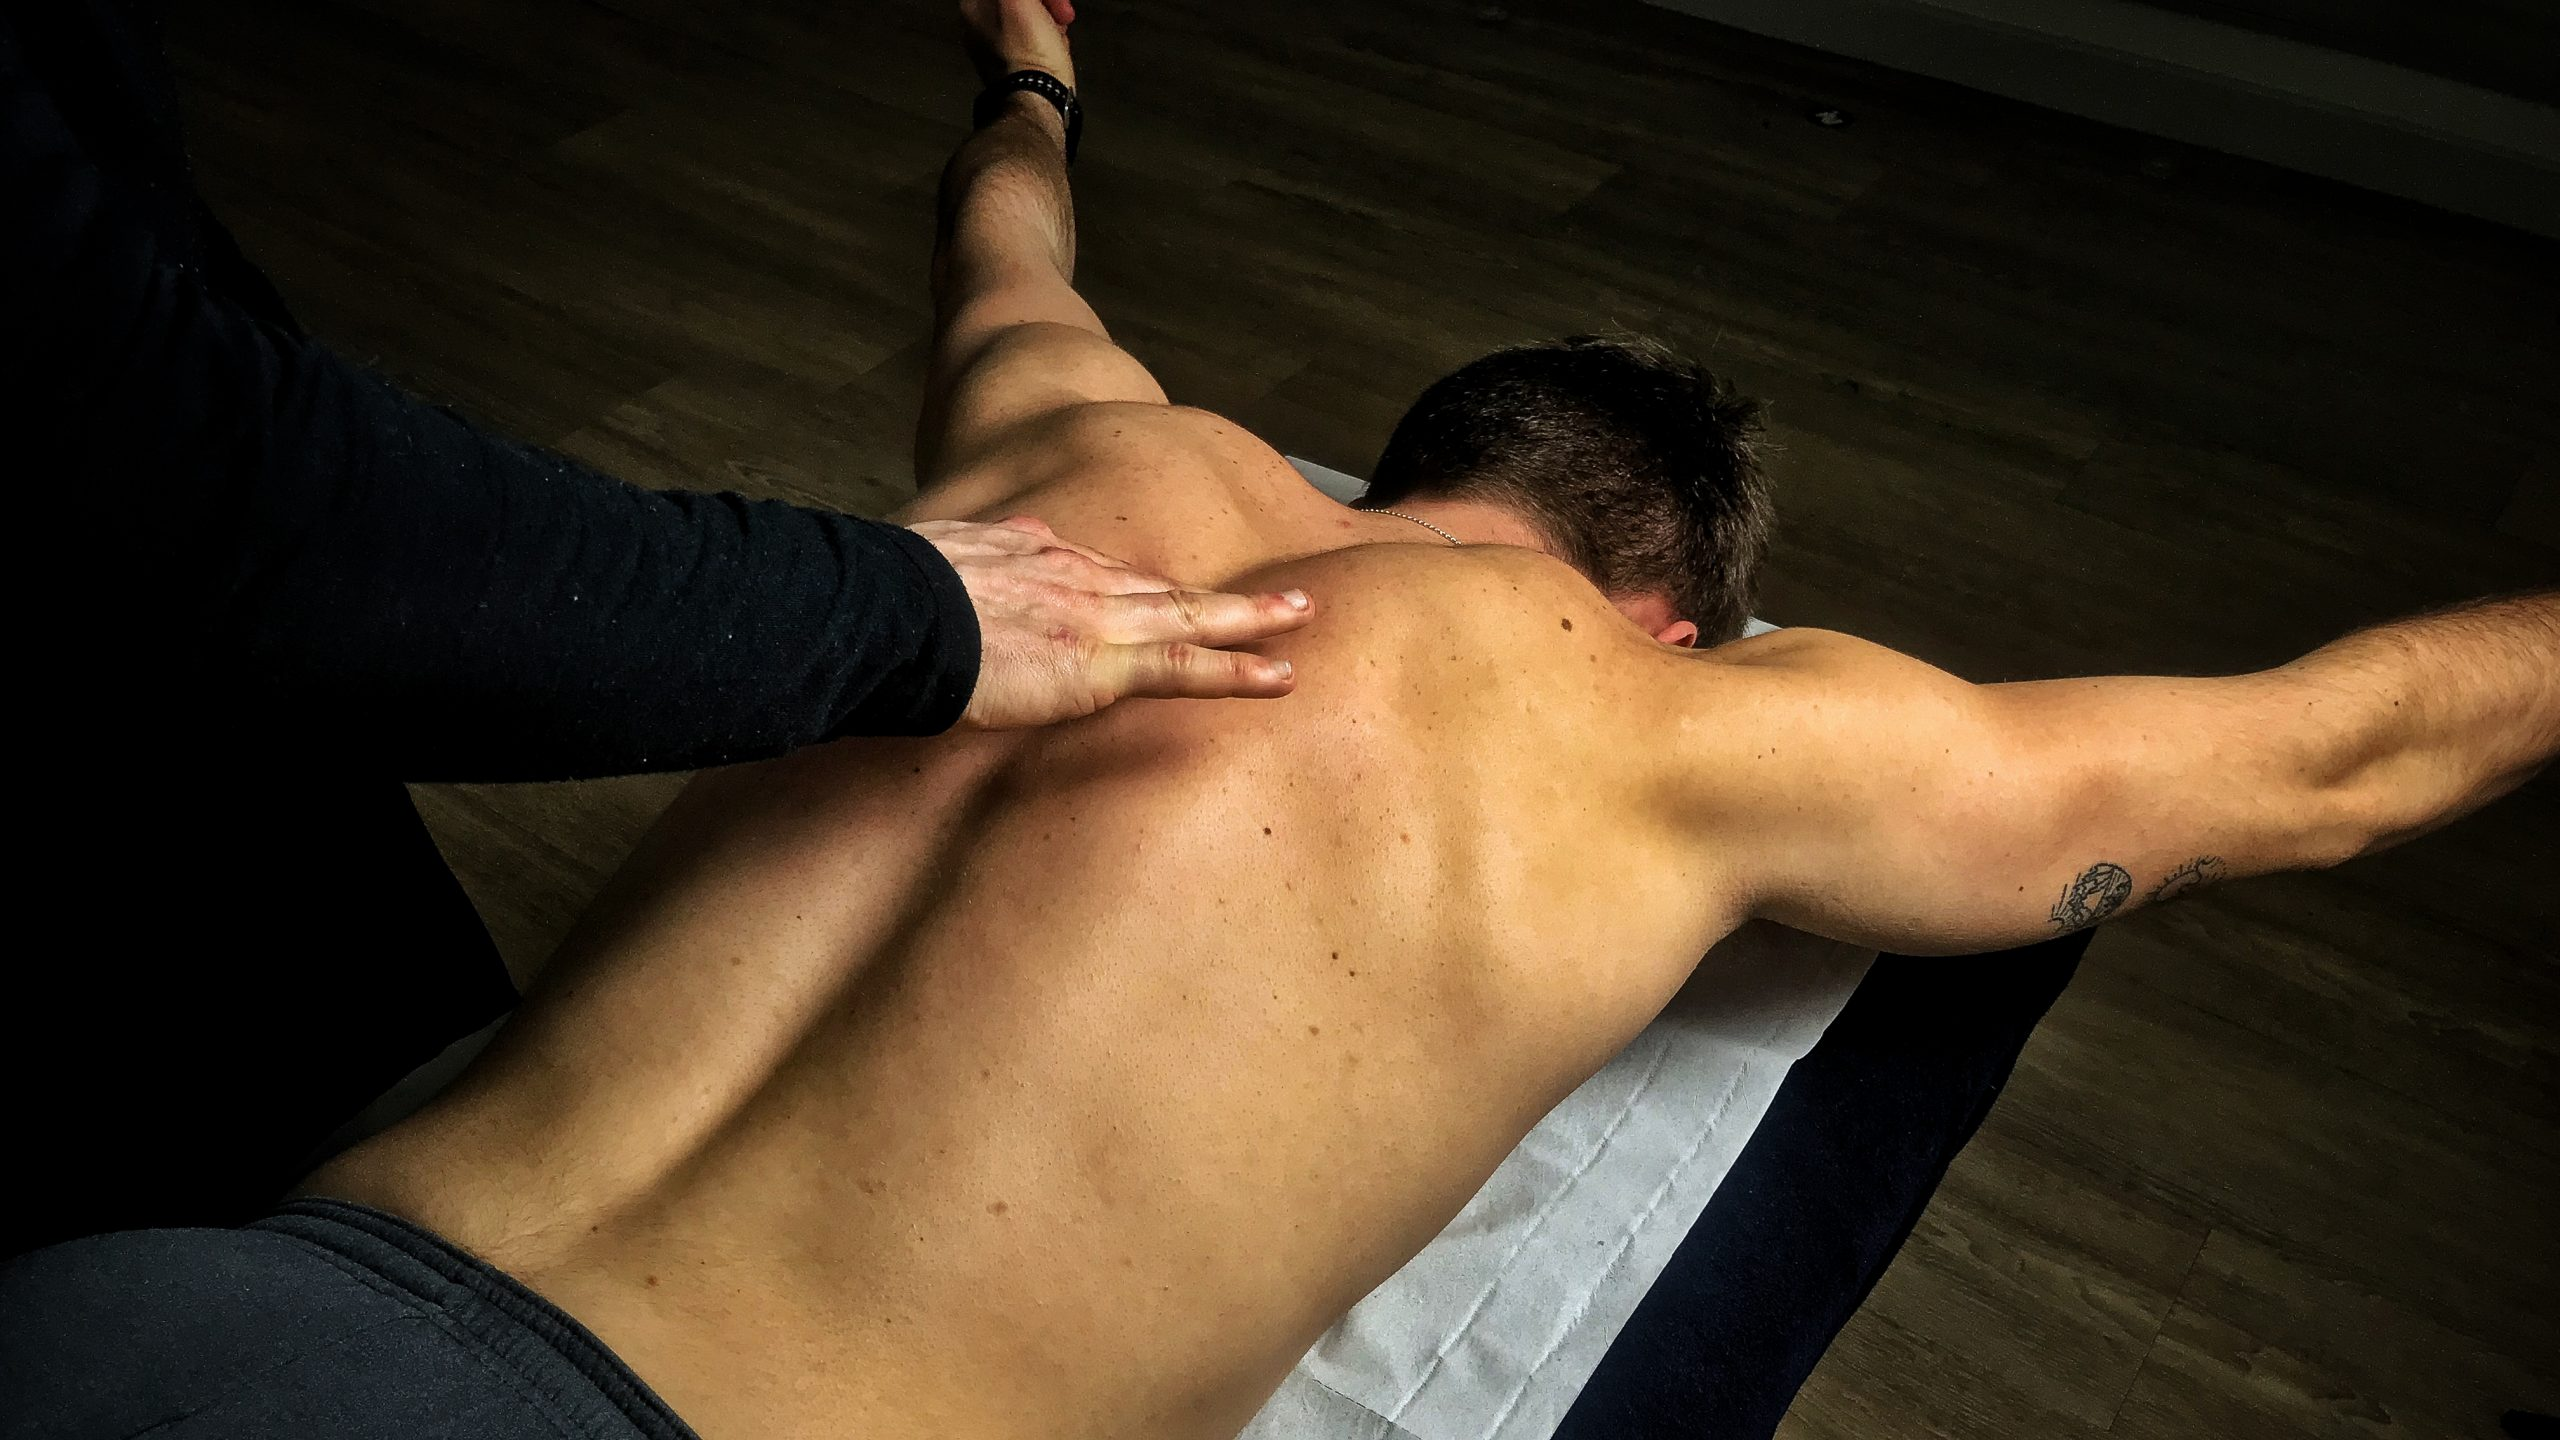 Seventy9 Sports Therapy, injury clinic, Farnham, physiotherapy, sports massage, injury prevention, rehabilitation, sports therapy, therapies, injury, massage, exercise, movement, strength